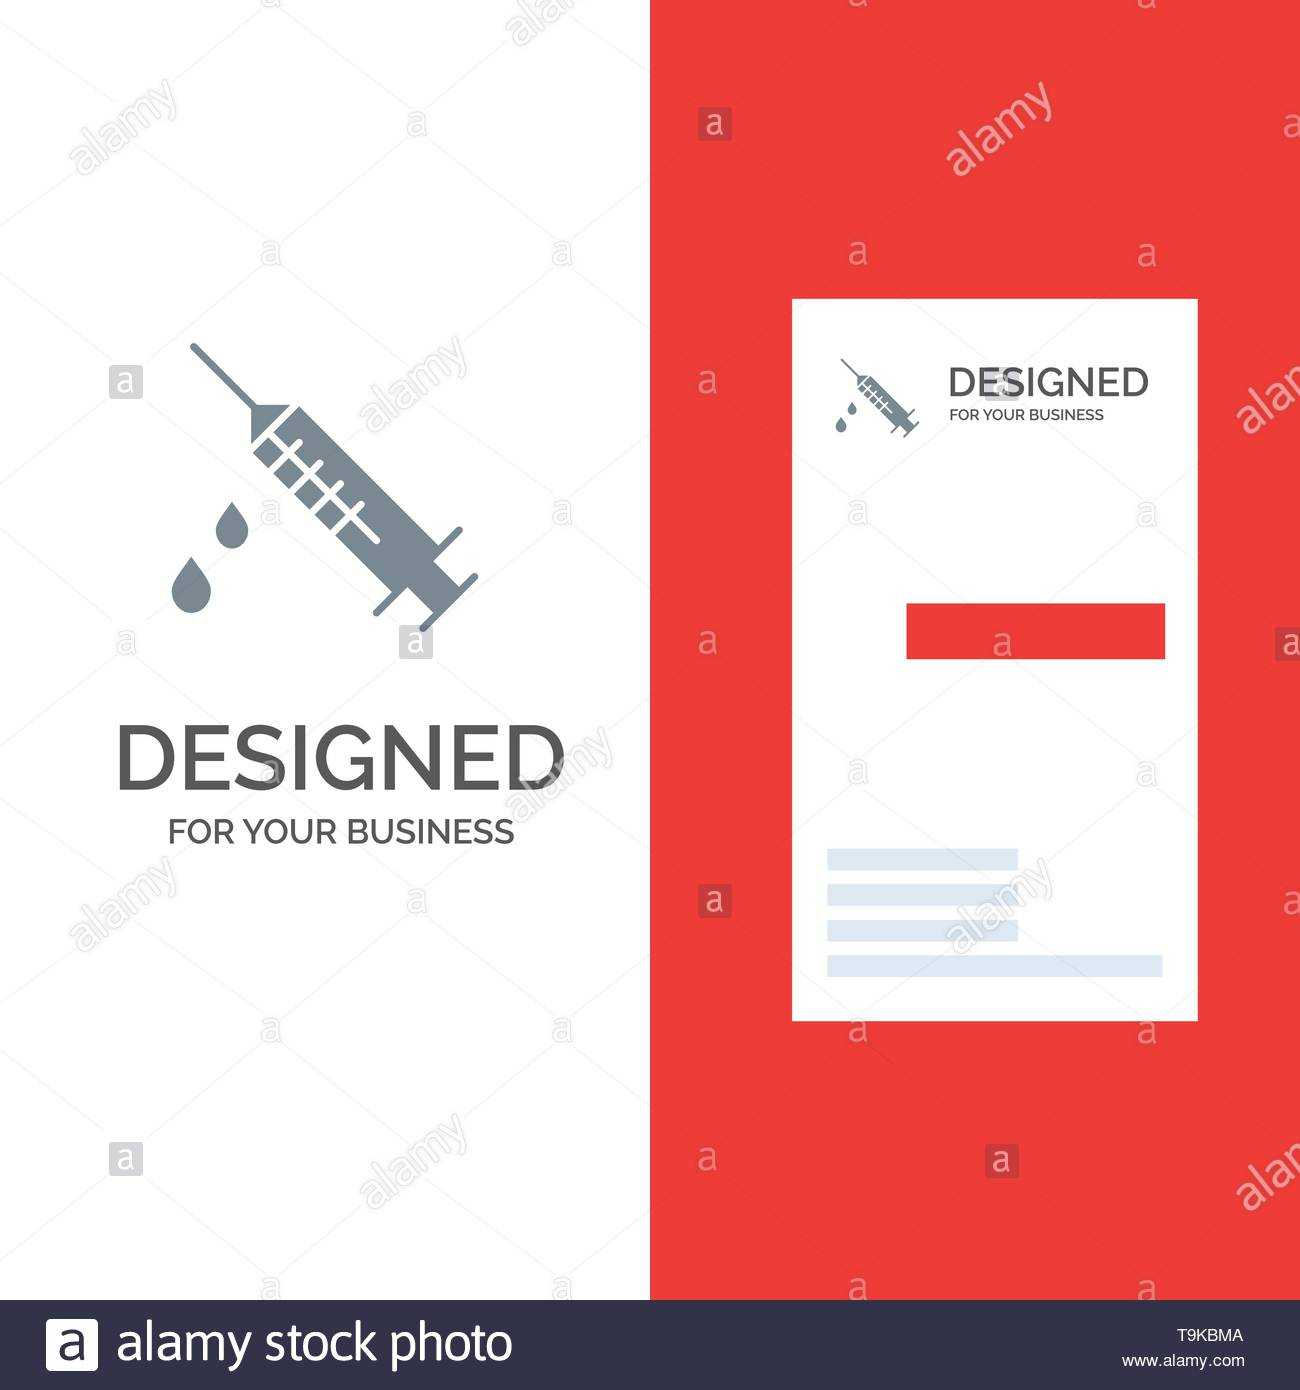 Dope, Injection, Medical, Drug Grey Logo Design And Business For Dope Card Template